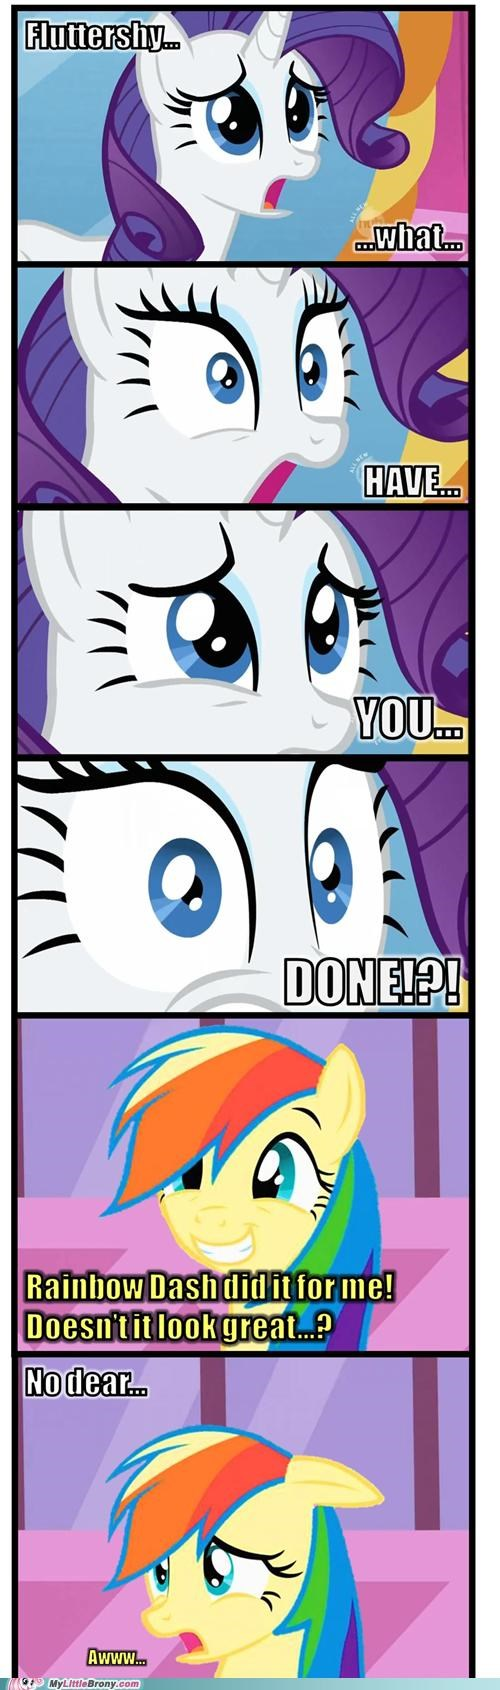 fluttershy meme rainbow dash rarity what have you done - 5363319040